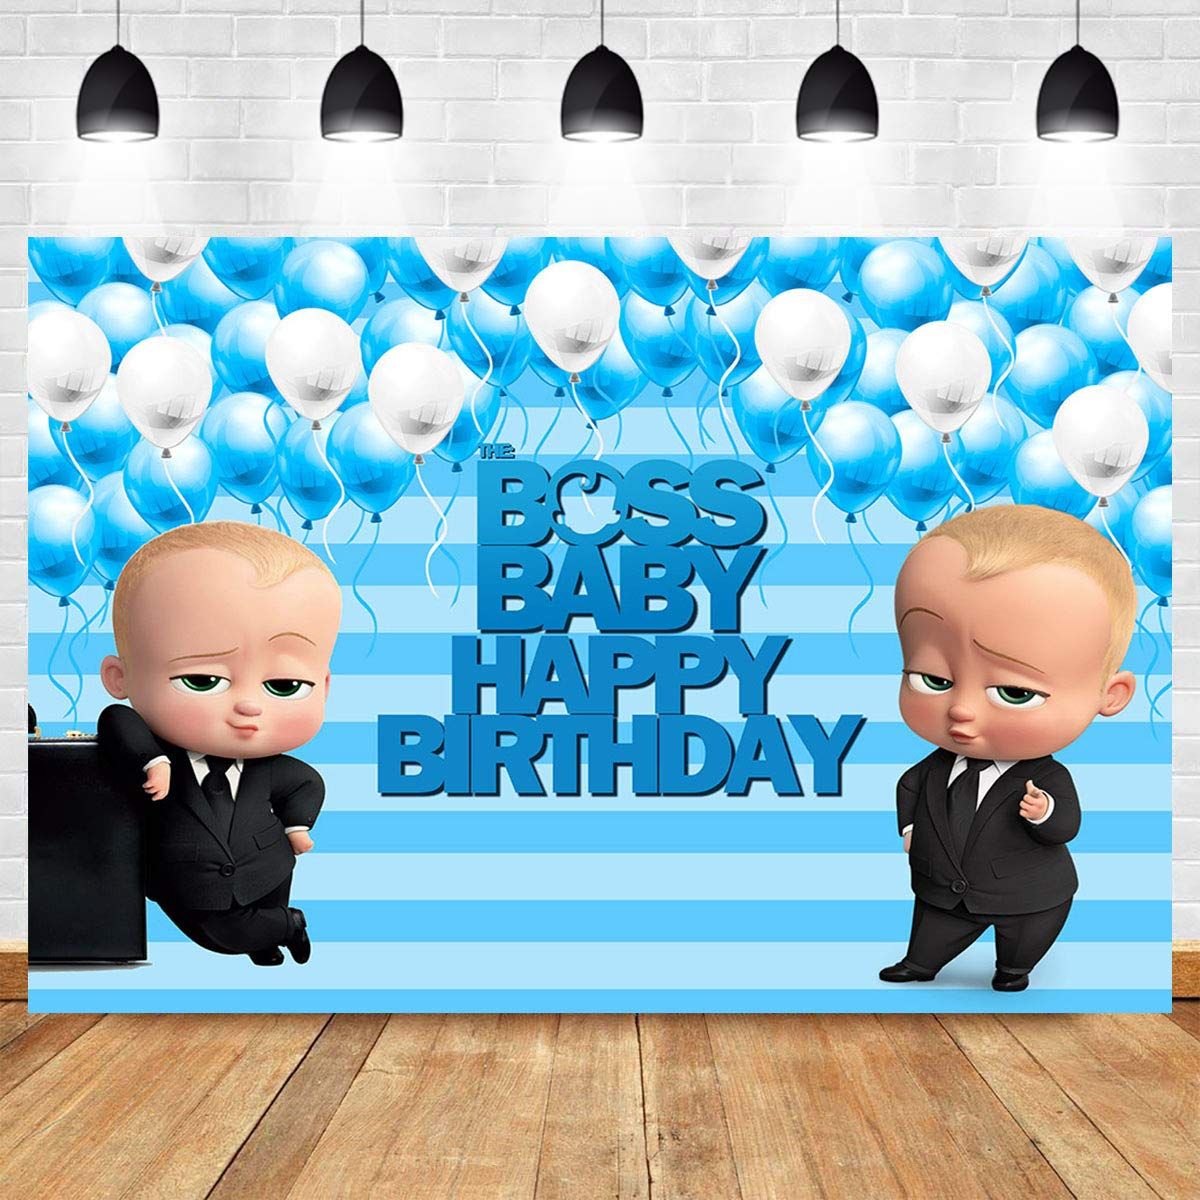 Photography Backdrop Blue Stripe Ballon For Baby Shower Supplies Vinyl 7x5ft Photo Background Boss Baby Happy Birthday Boys Girls Cake Table Photo